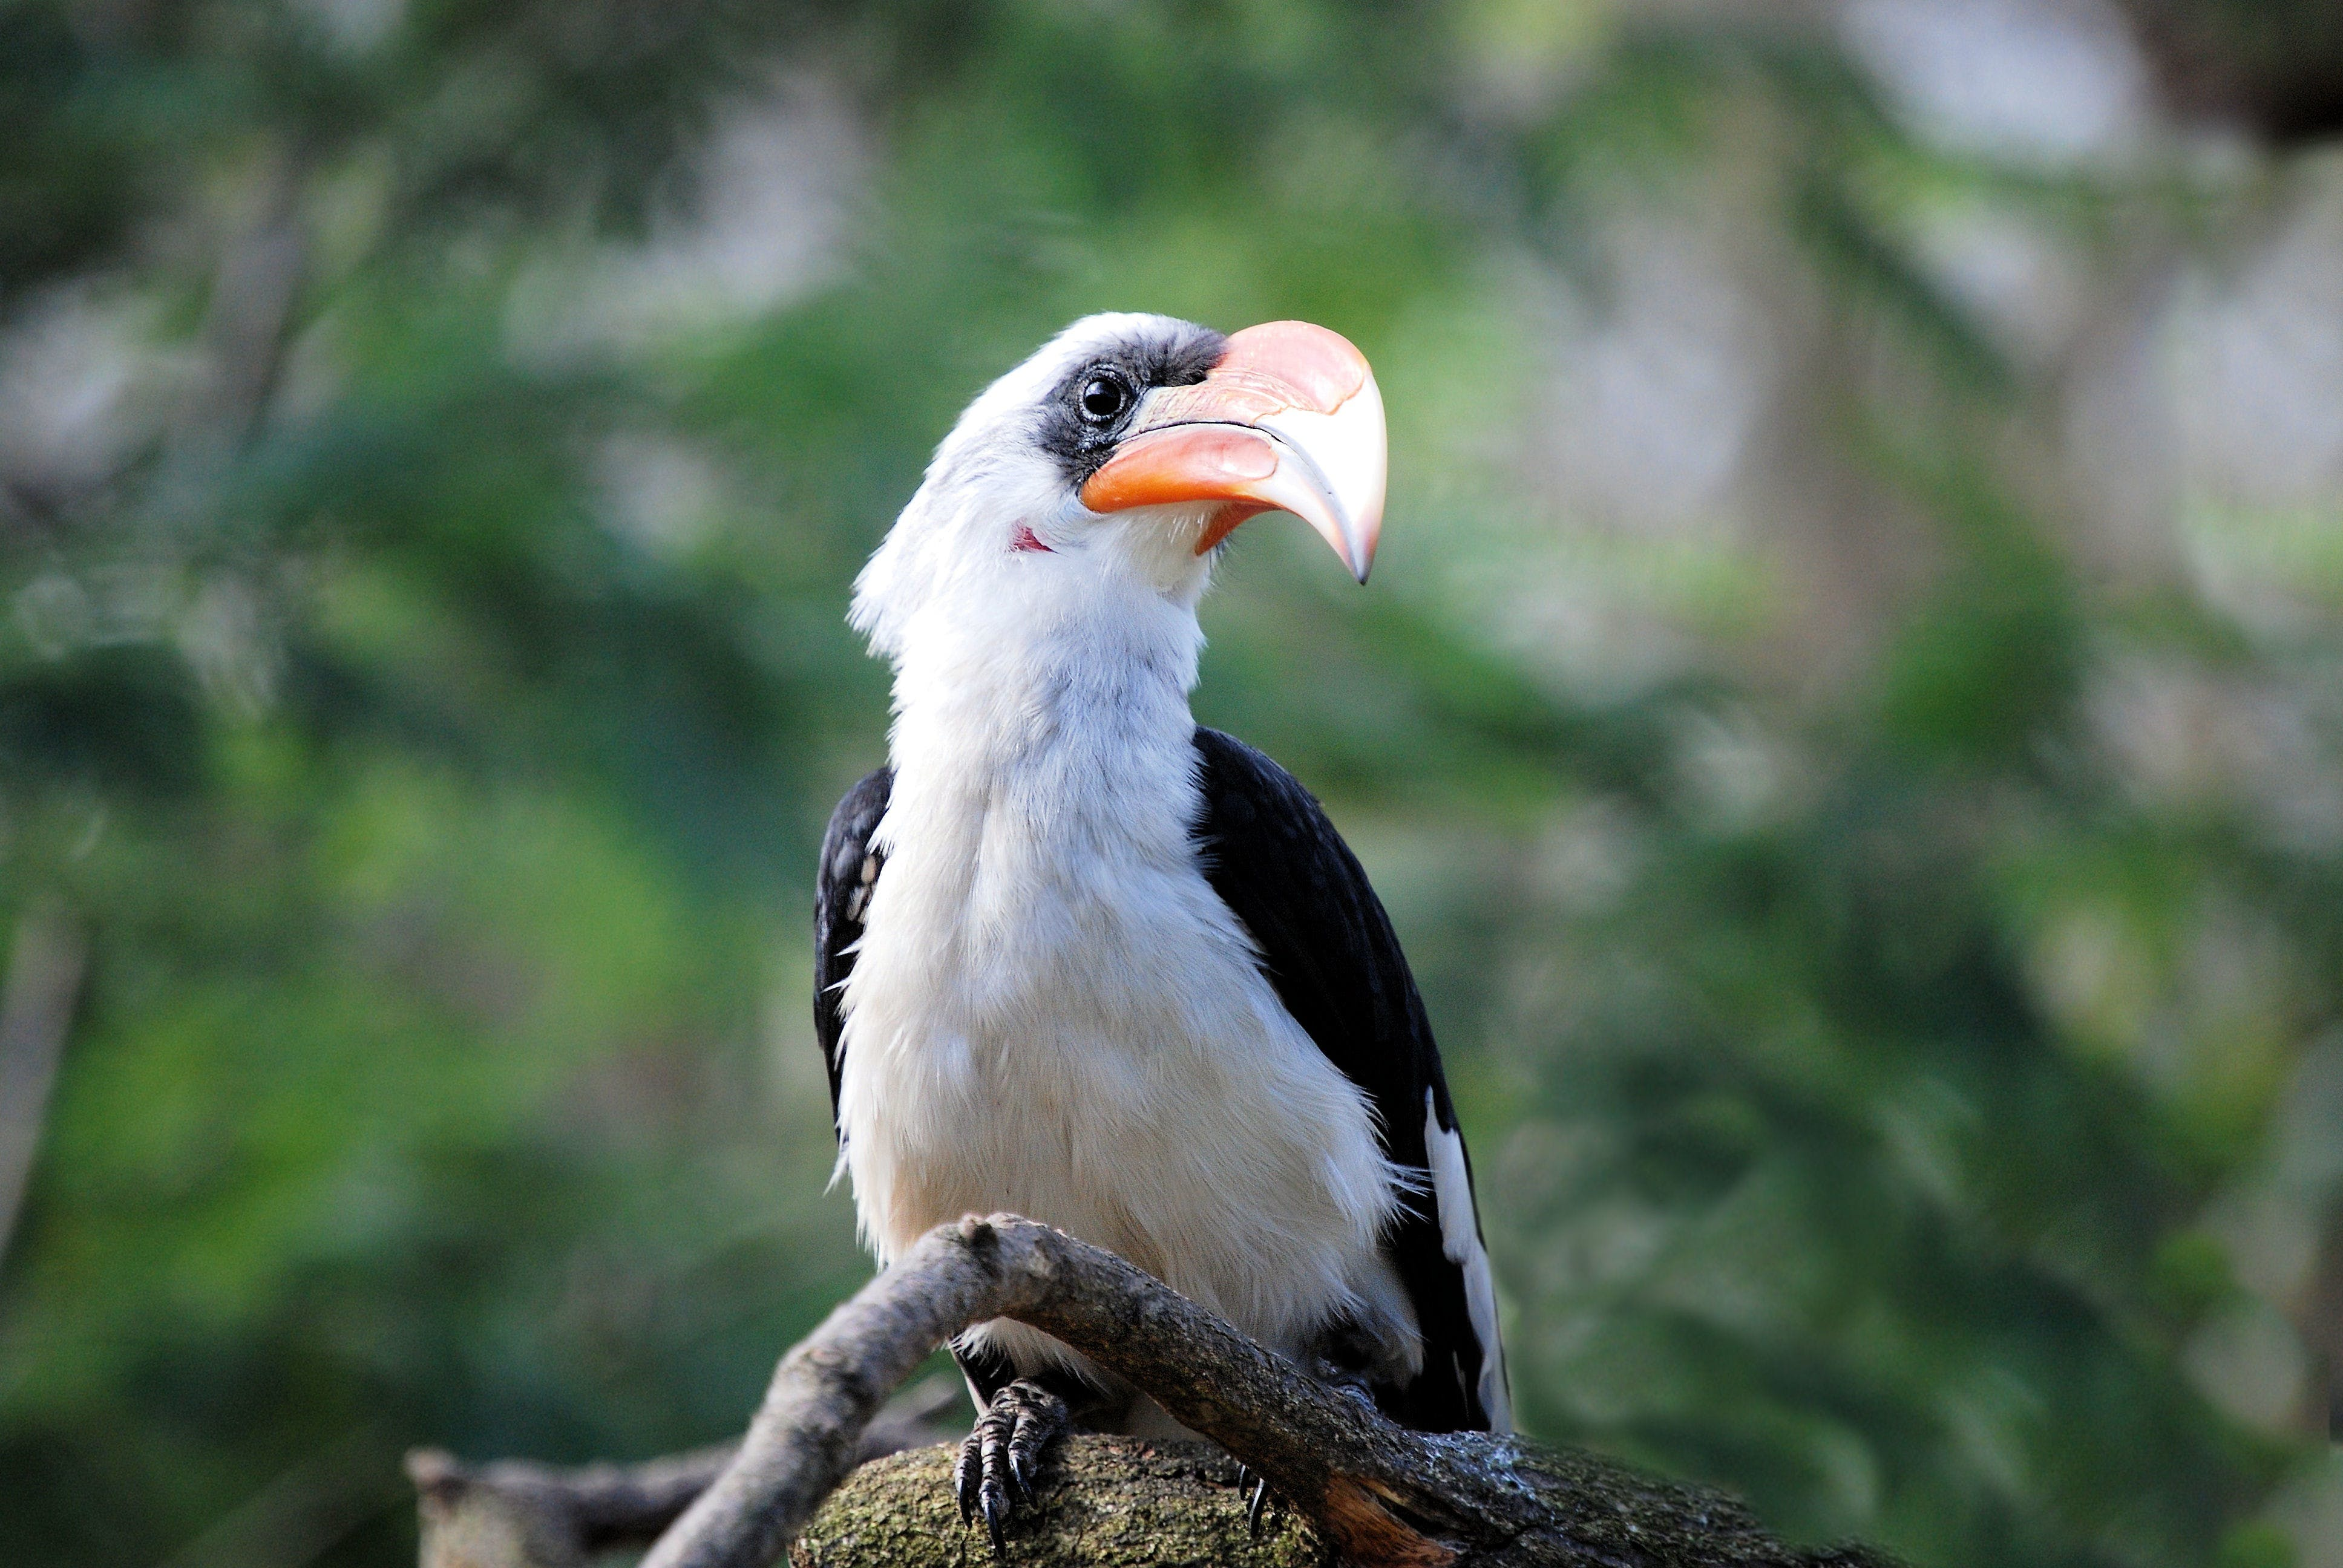 White and Black Toucan Bird Perched on Tree Branch